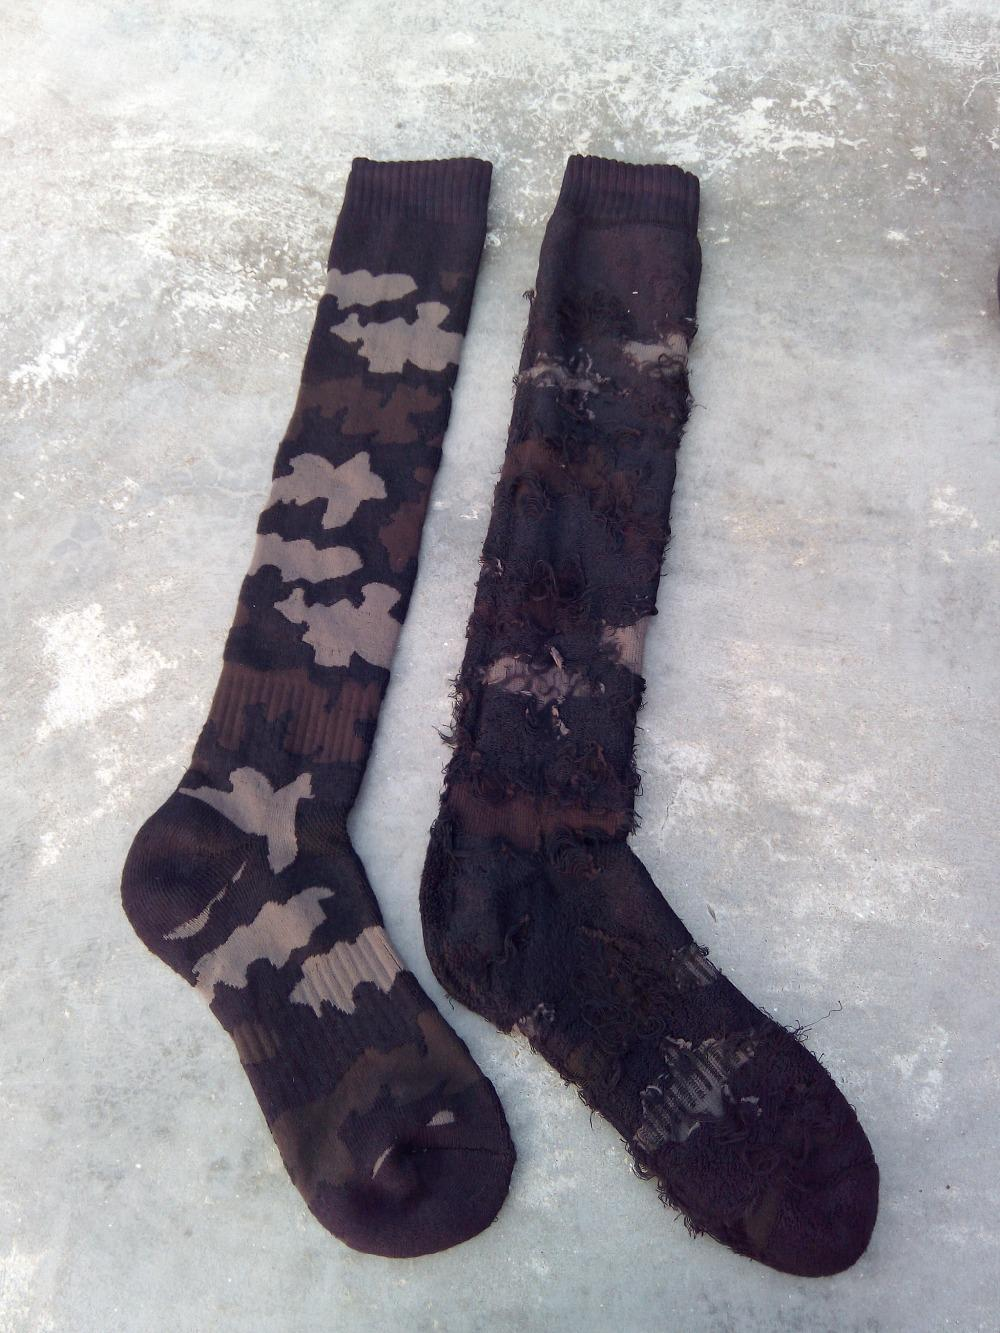 Knitting Pattern For Ski Socks : New camo knee high lg basketball Knitting towel bottom ski socks outdo skateb...